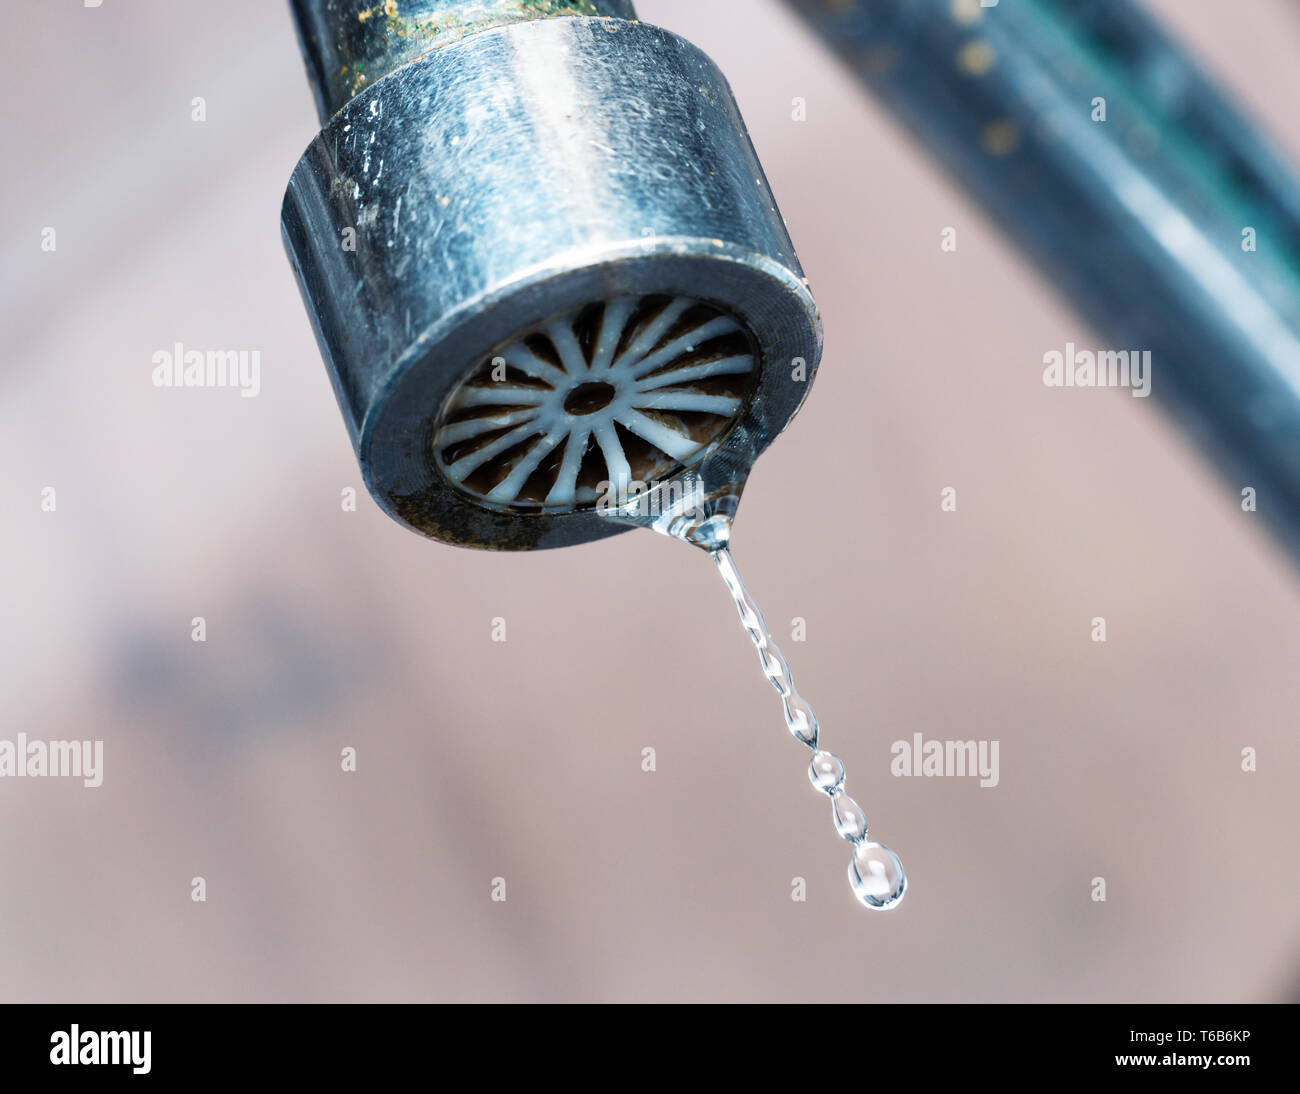 Macro shot of an old kitchen tap dripping, wasting water concept - Stock Image